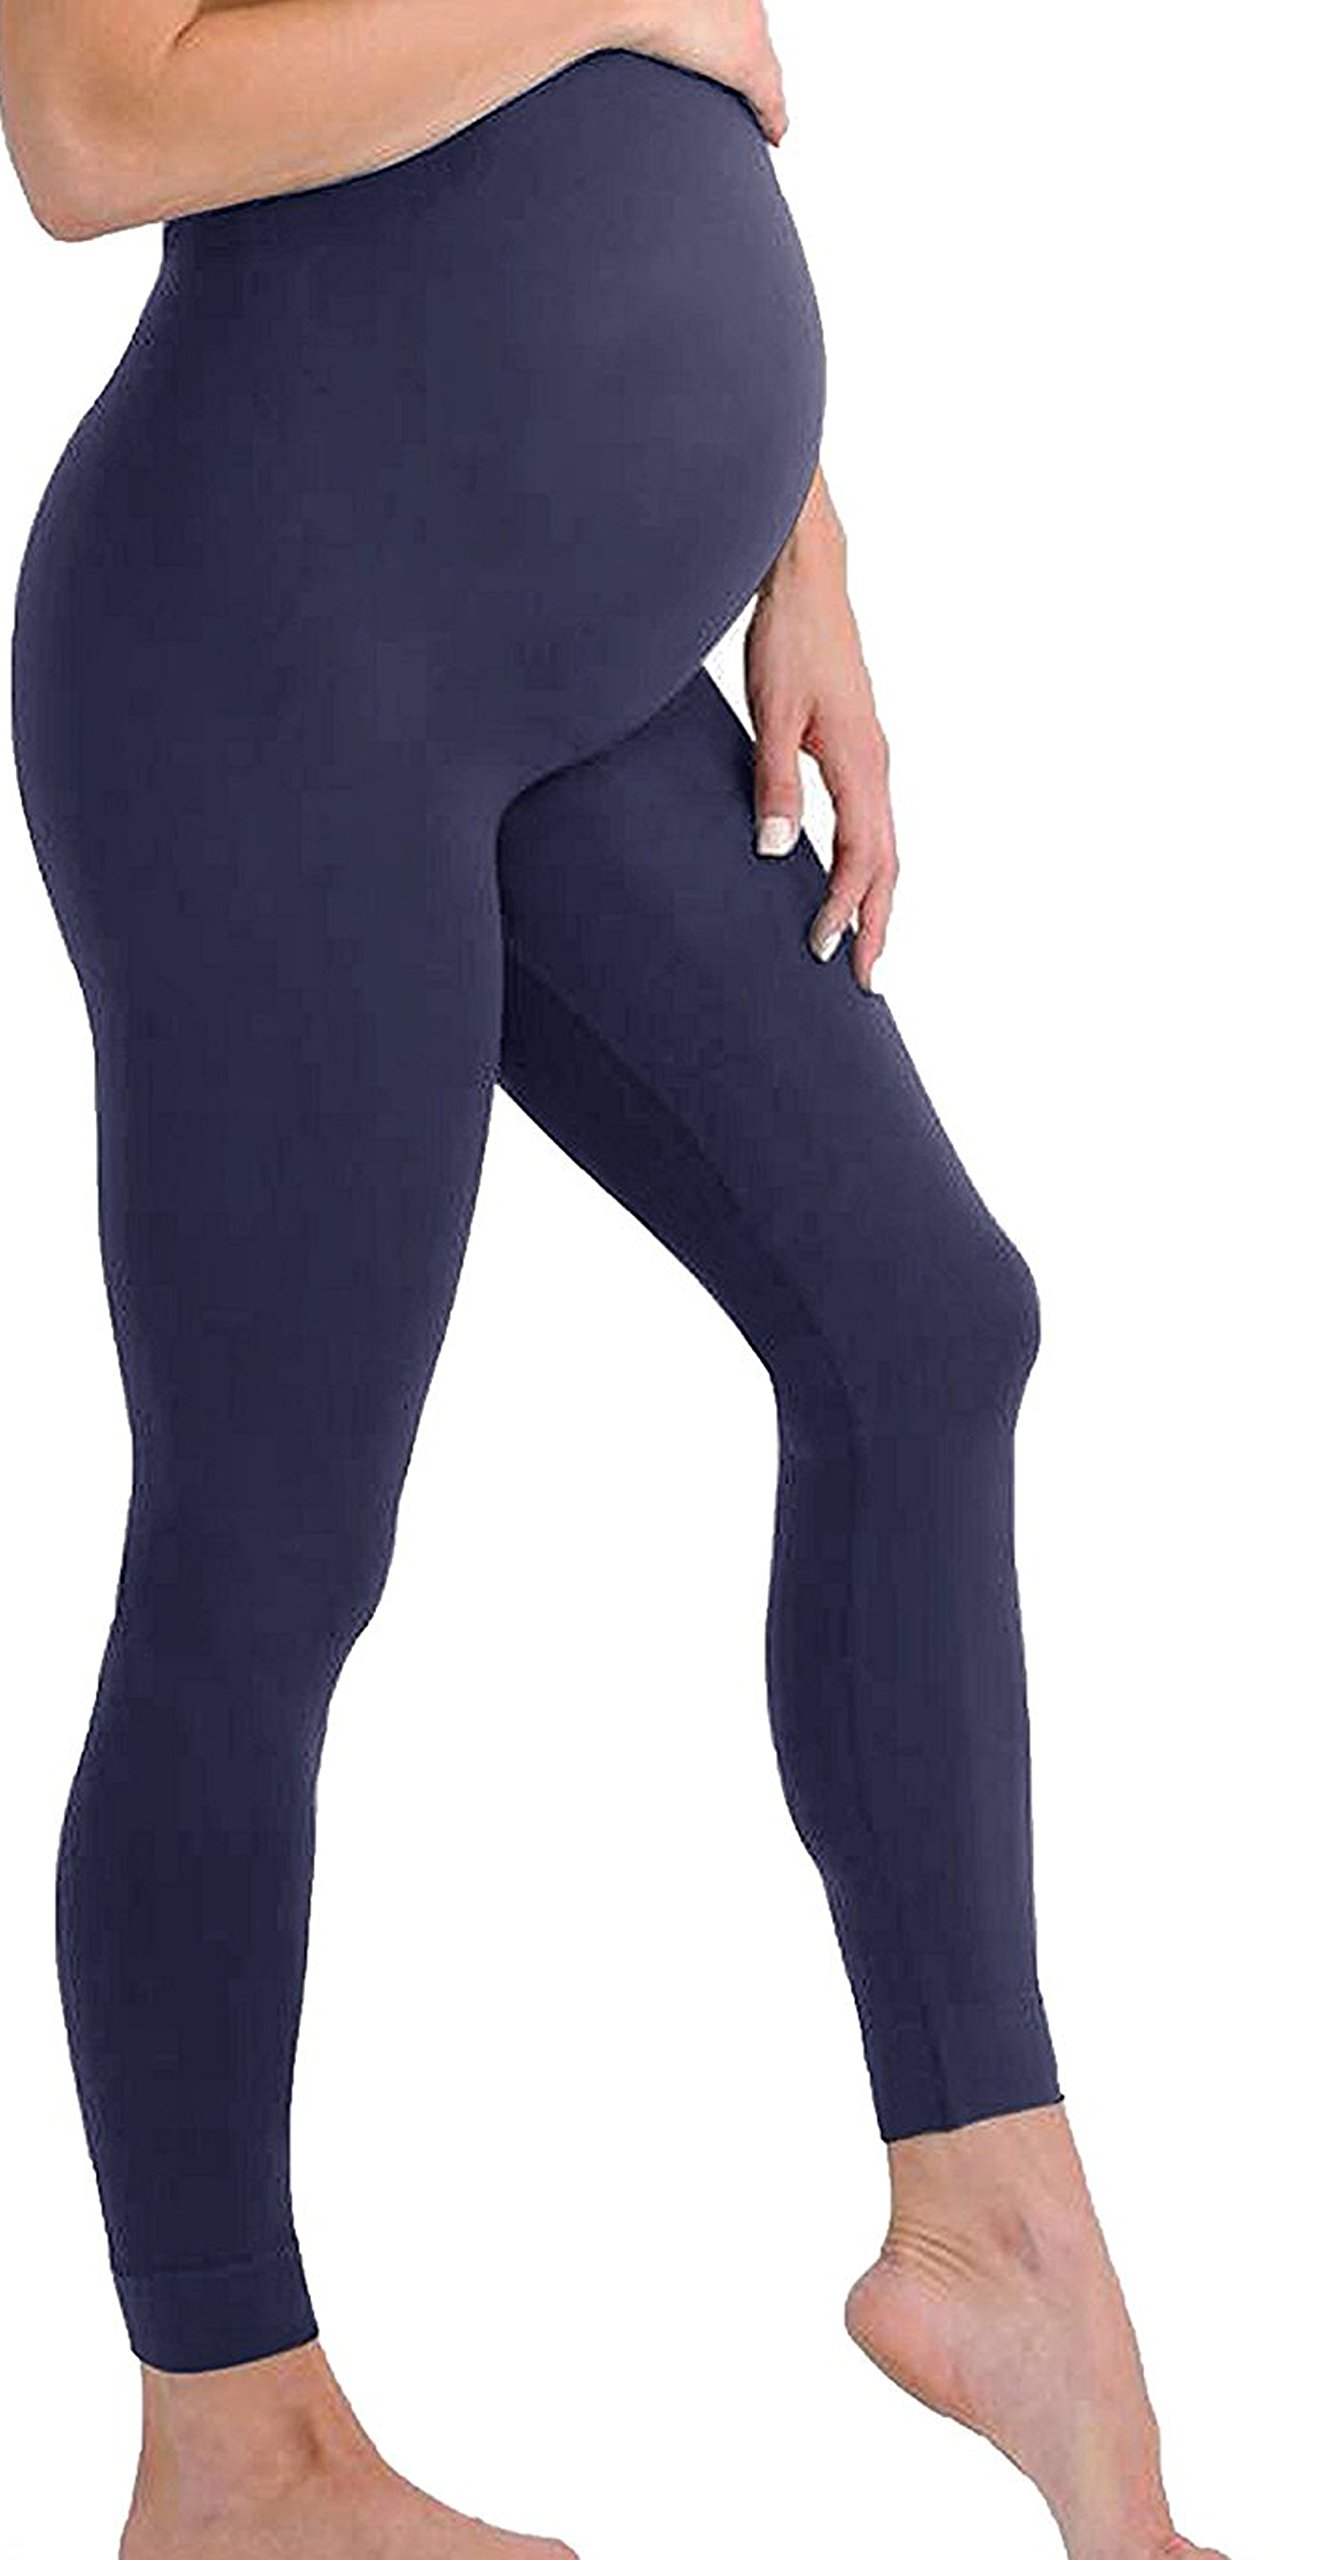 Touch Me Maternity Leggings Black Navy Grey Soft Solid Stretch Seamless Tights One Size Fits All Active Wear Yoga Gym Clothes (Maternity - One Size Fits All, Navy Leggings)